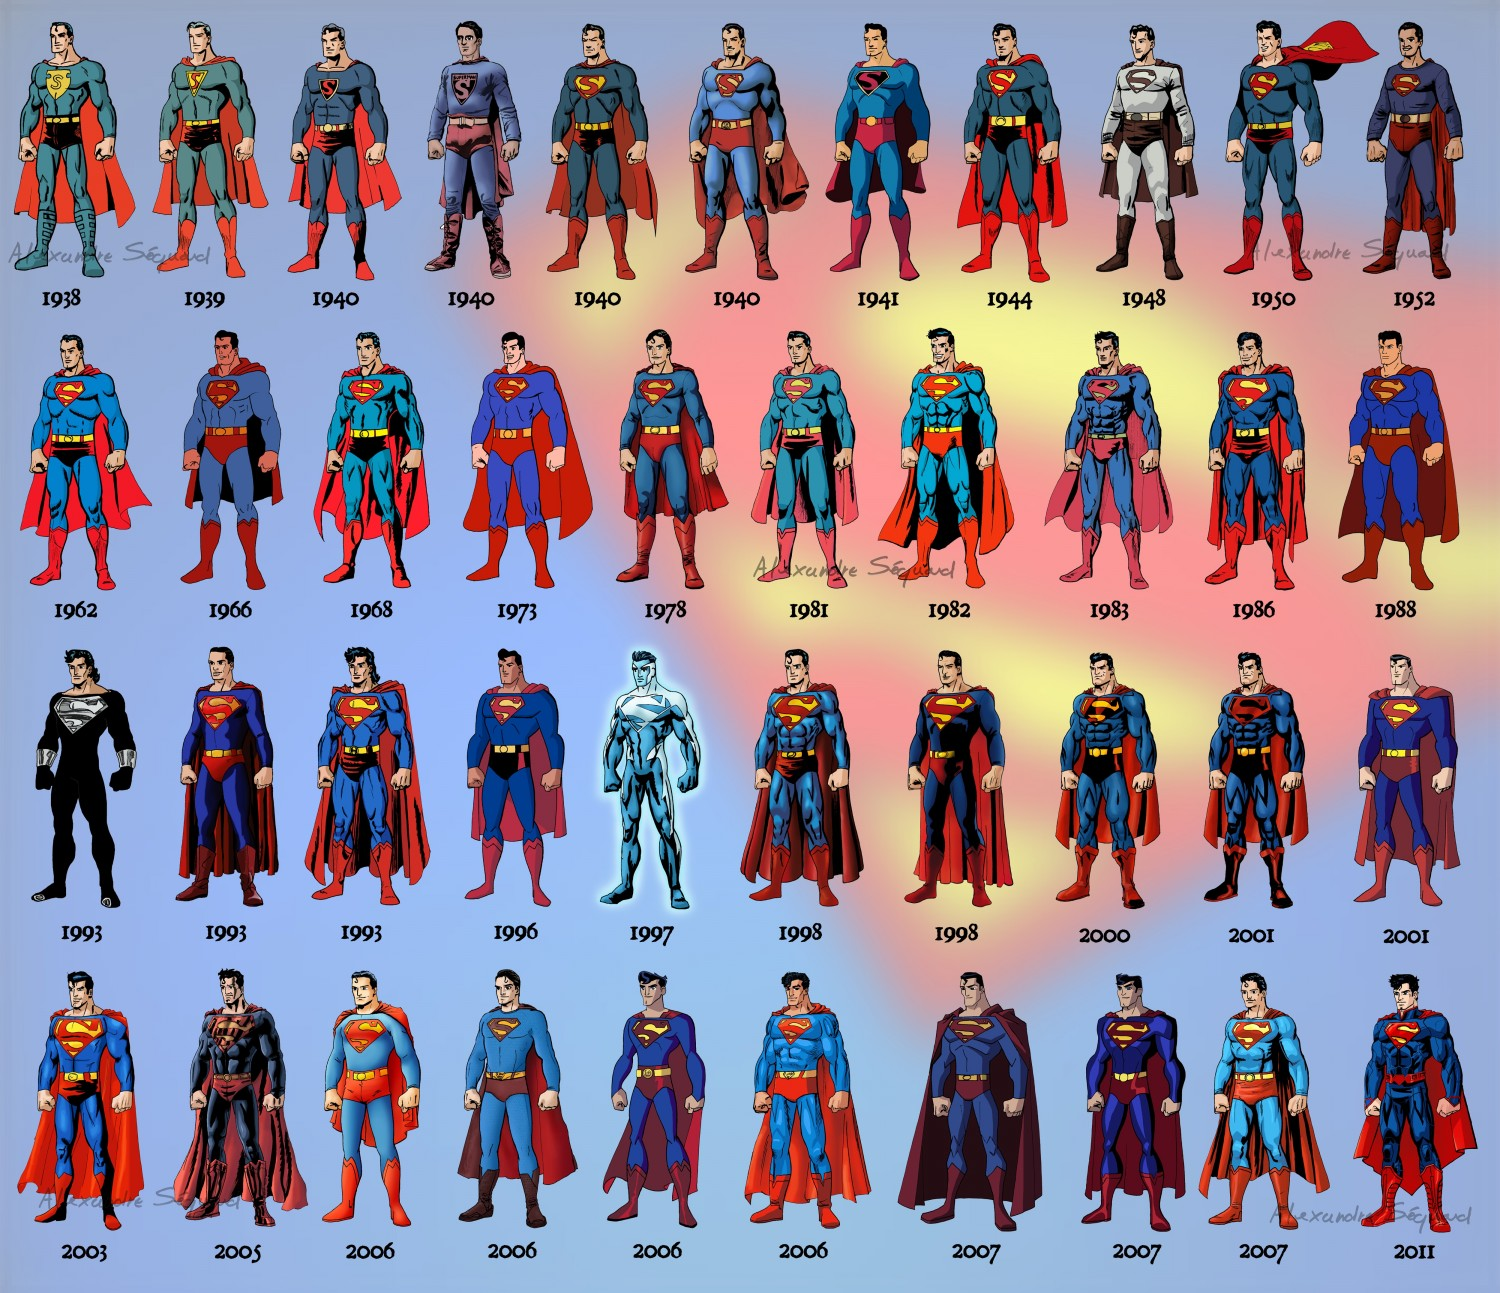 the_evolution_of_superman_1938_2011_527a8a6bdfb5a_w1500